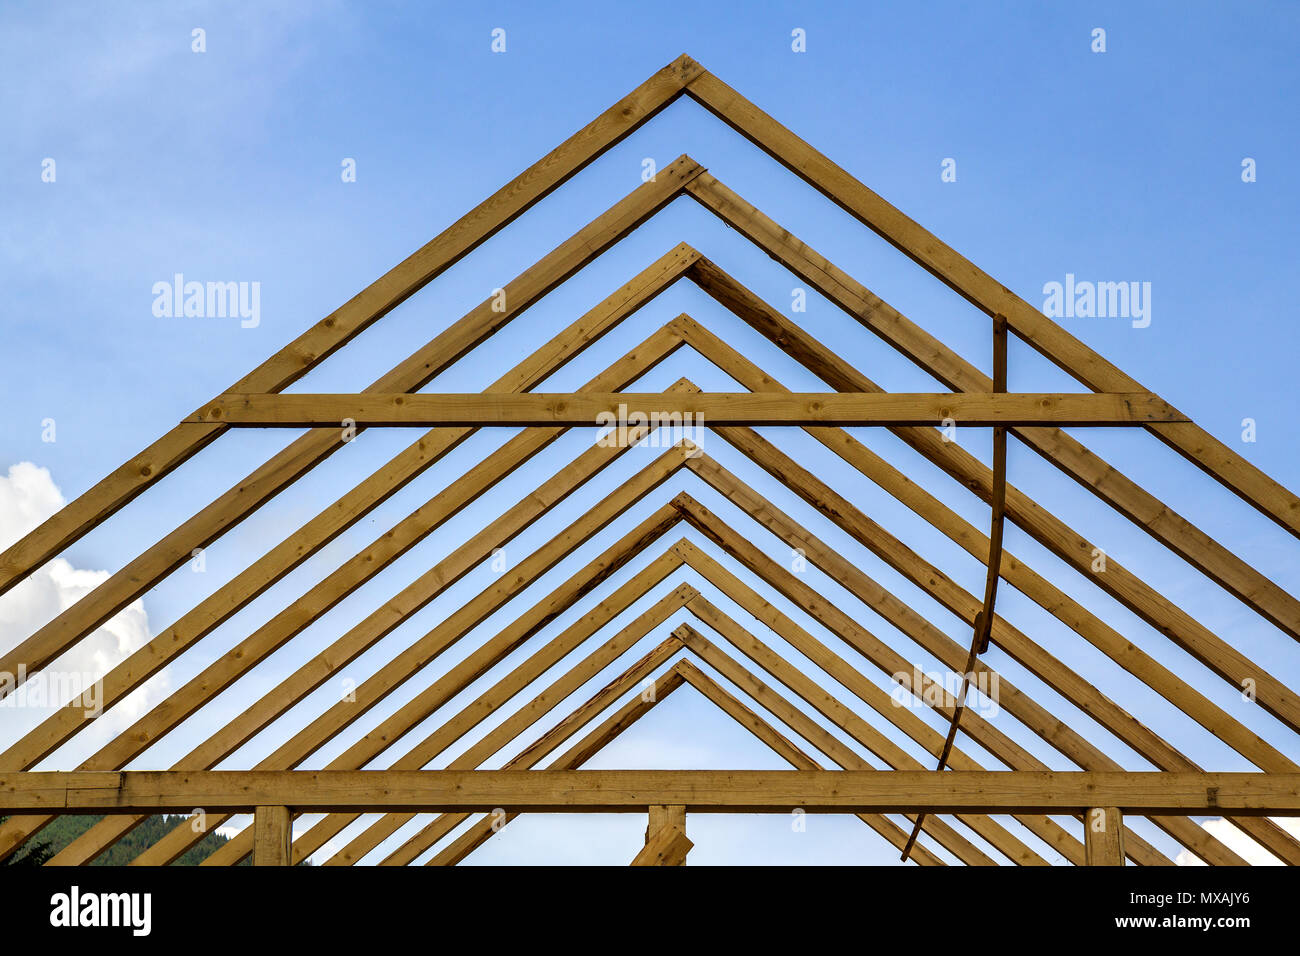 Close-up detail of wooden high steep roof framing under